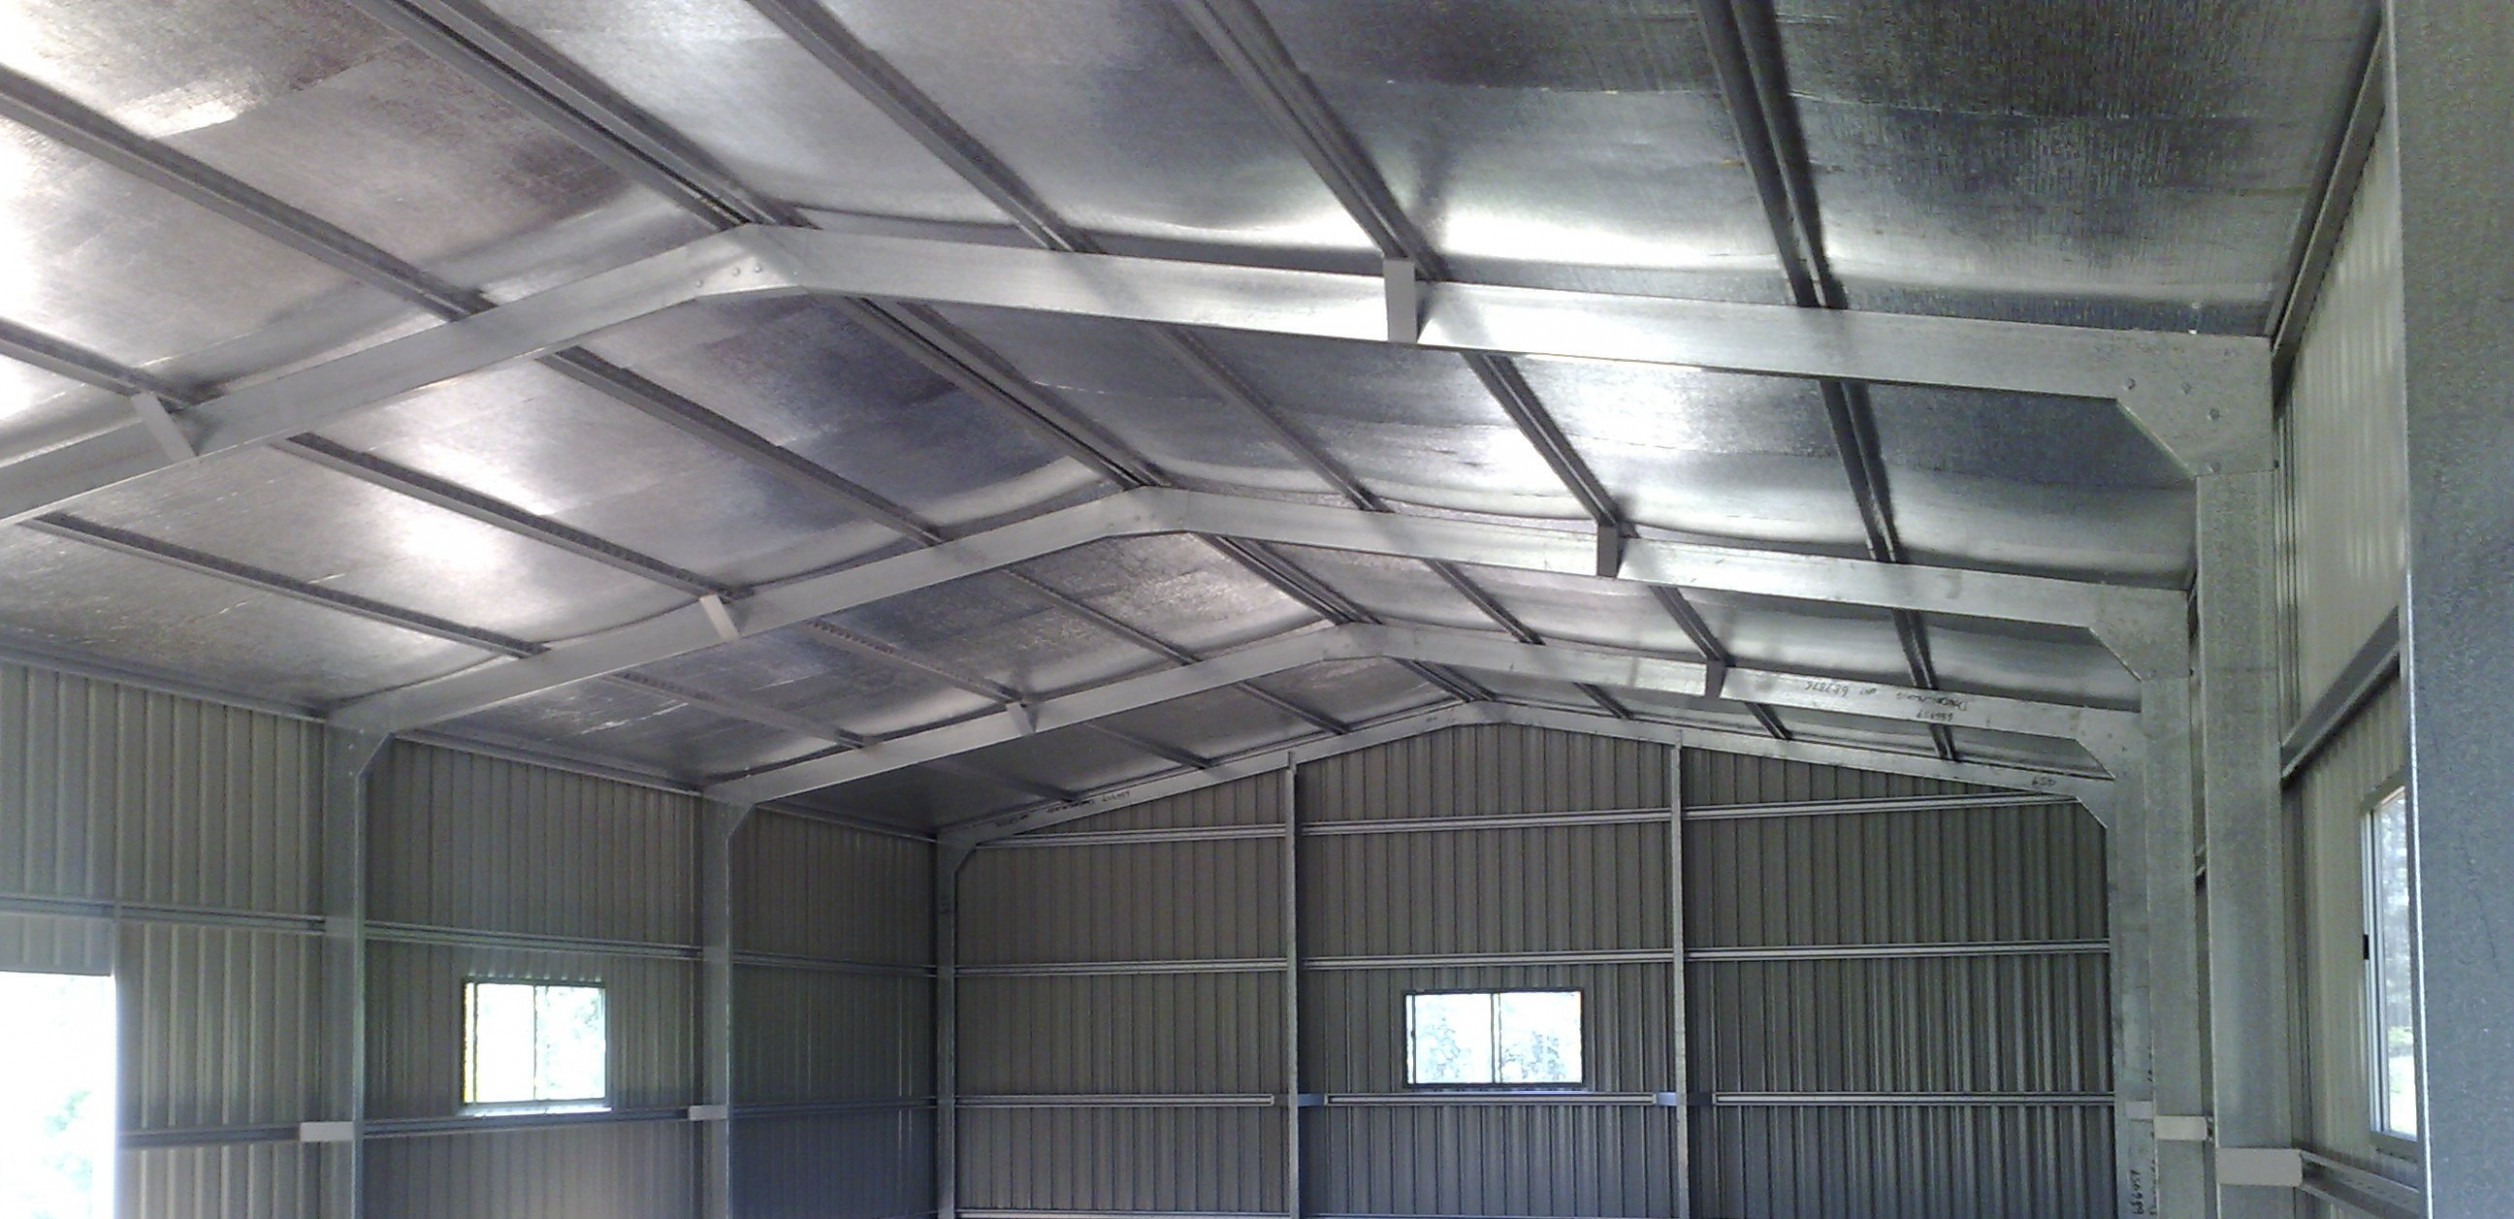 Insulating Your Shed Retrofitting Shed Insulation Steel Lining A Carport Roof.jpg